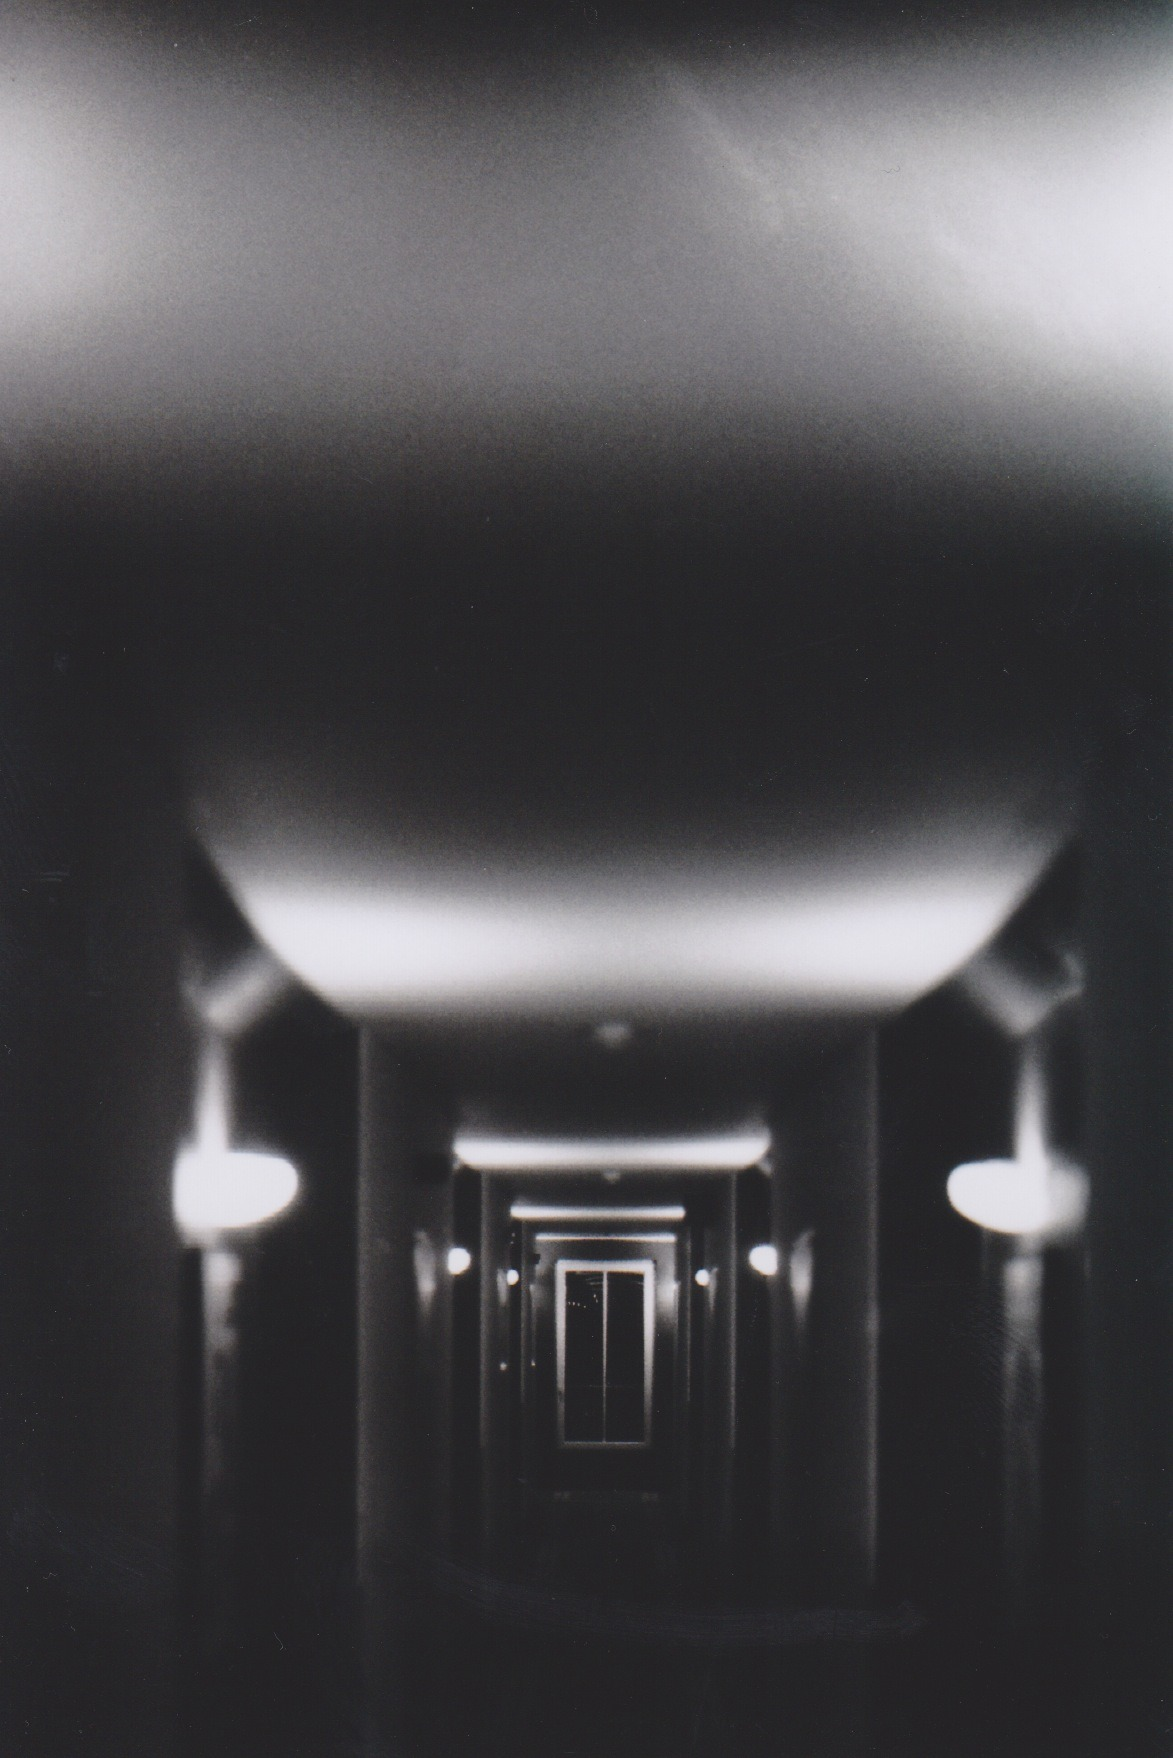 experimentingfilm:  Passage way in the hotel.